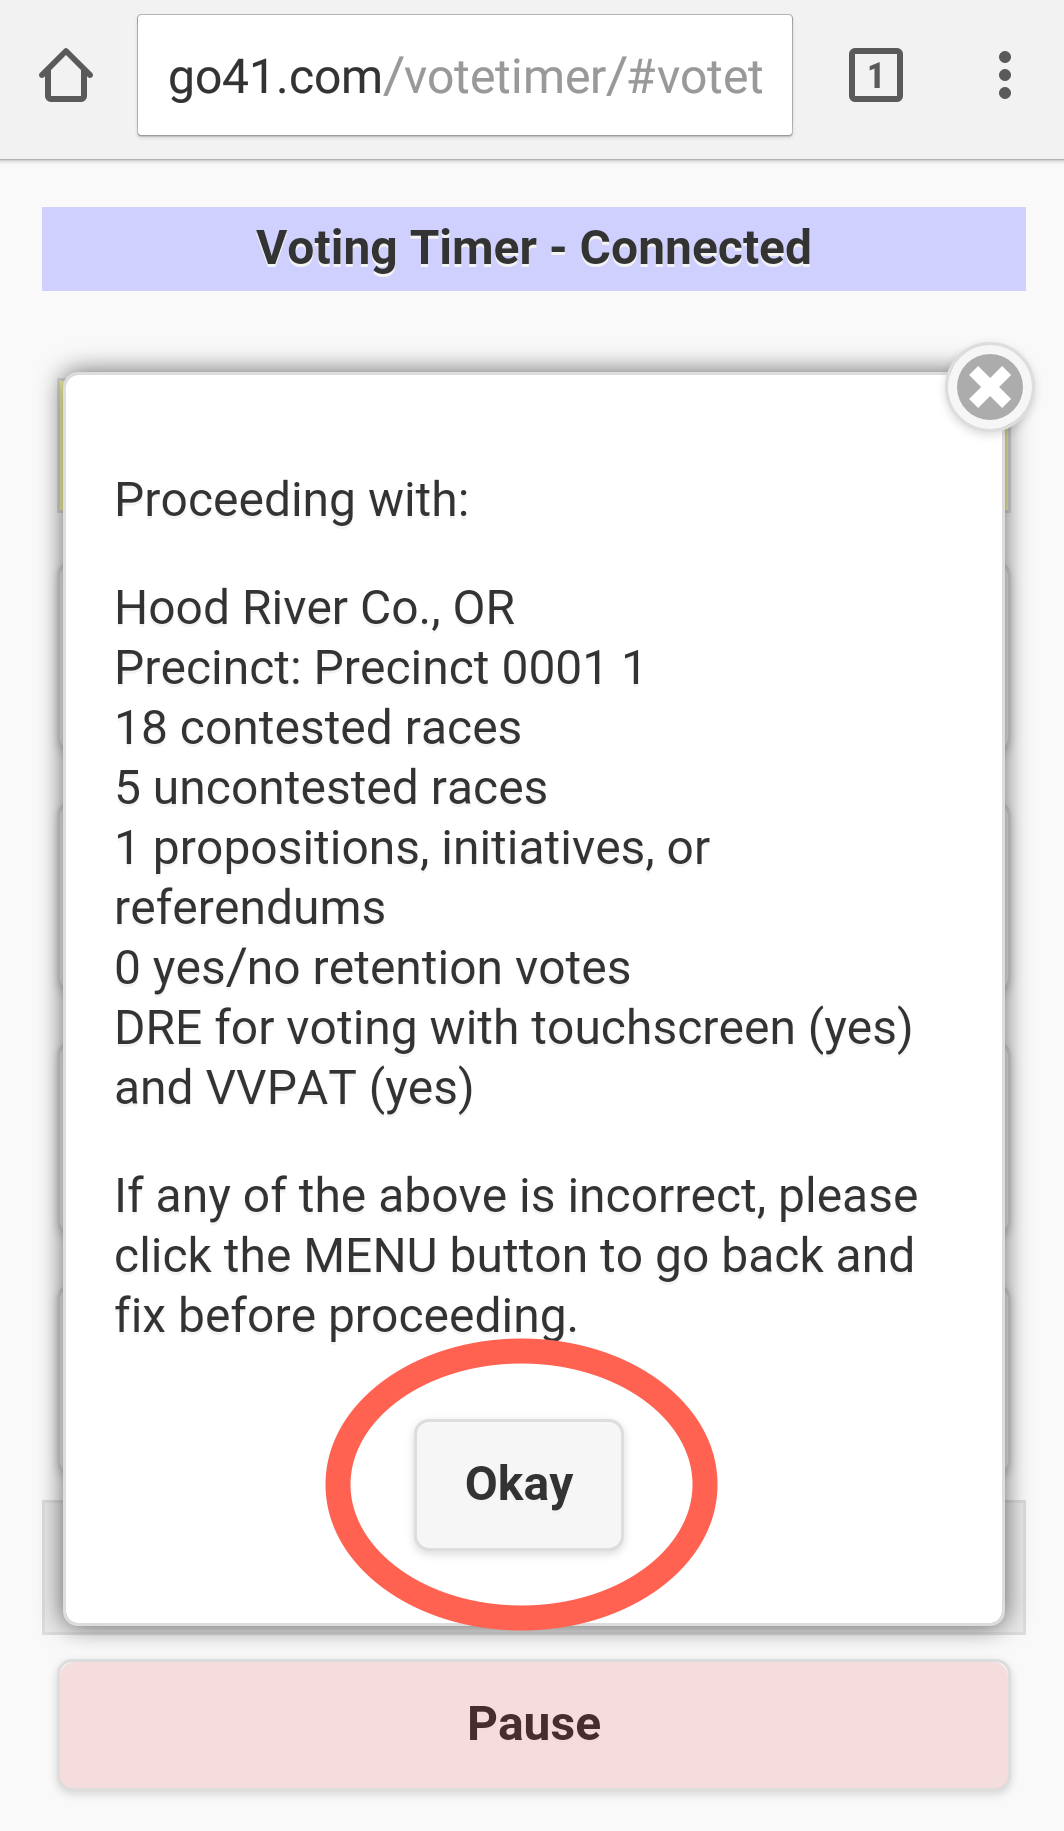 A user is prompted to confirm details before tapping Okay